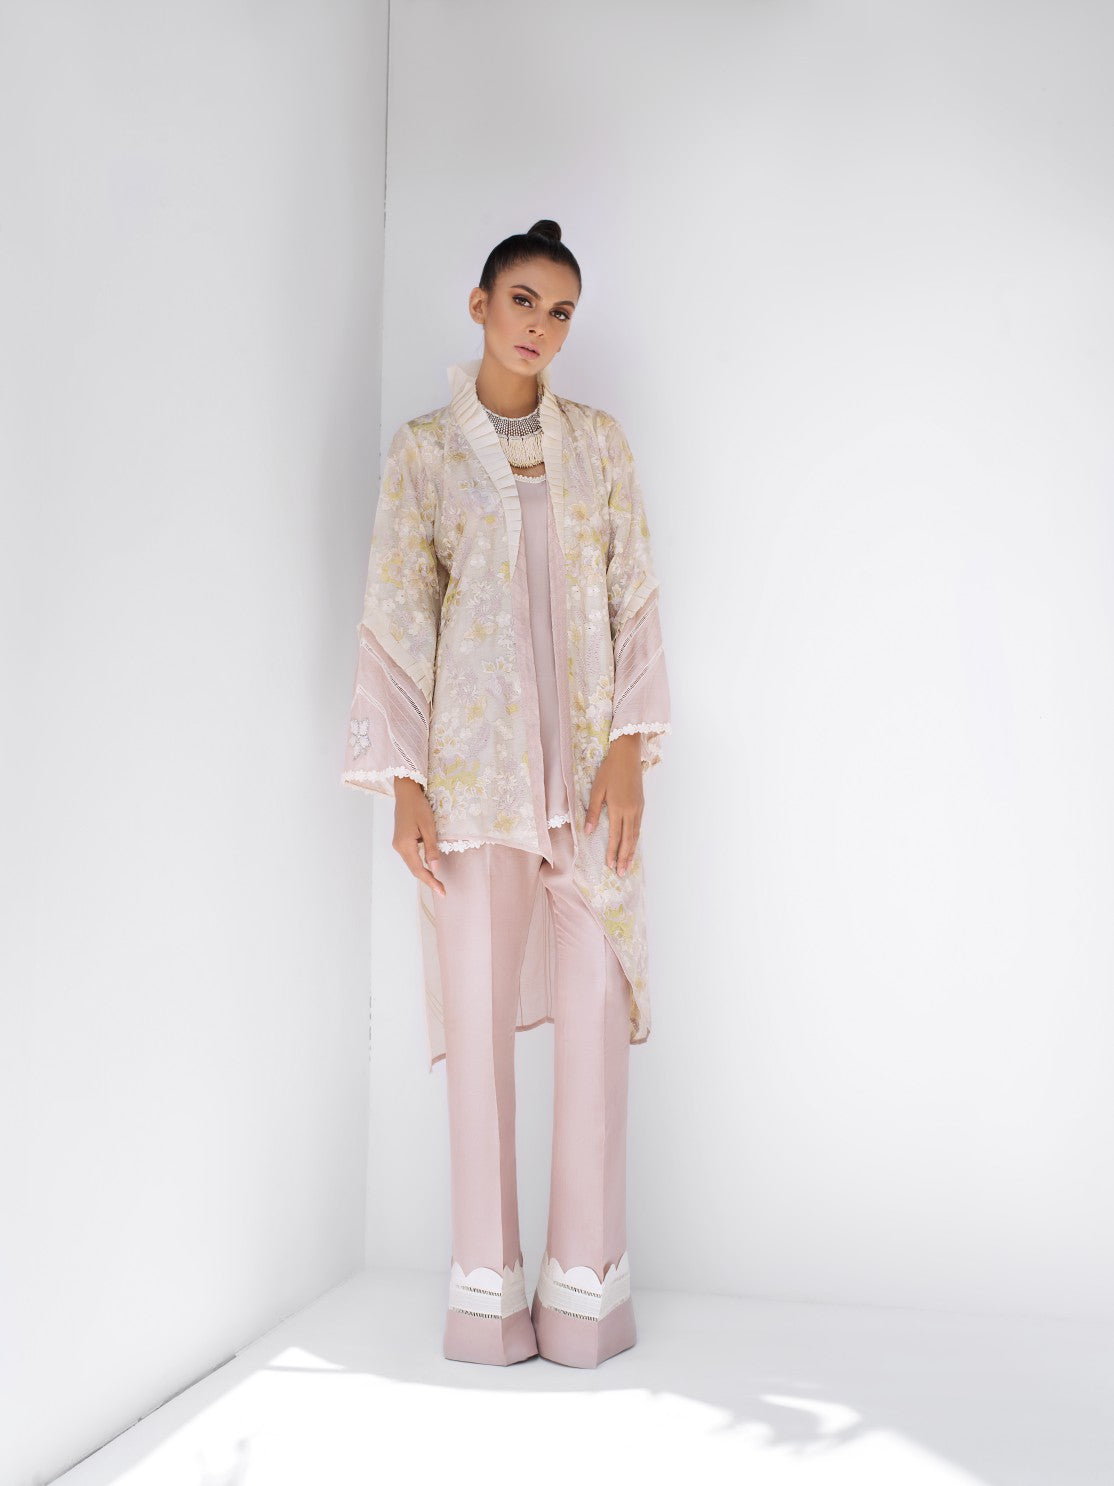 Sania Maskatiya - Cotton Net Embroidered Short Jacket